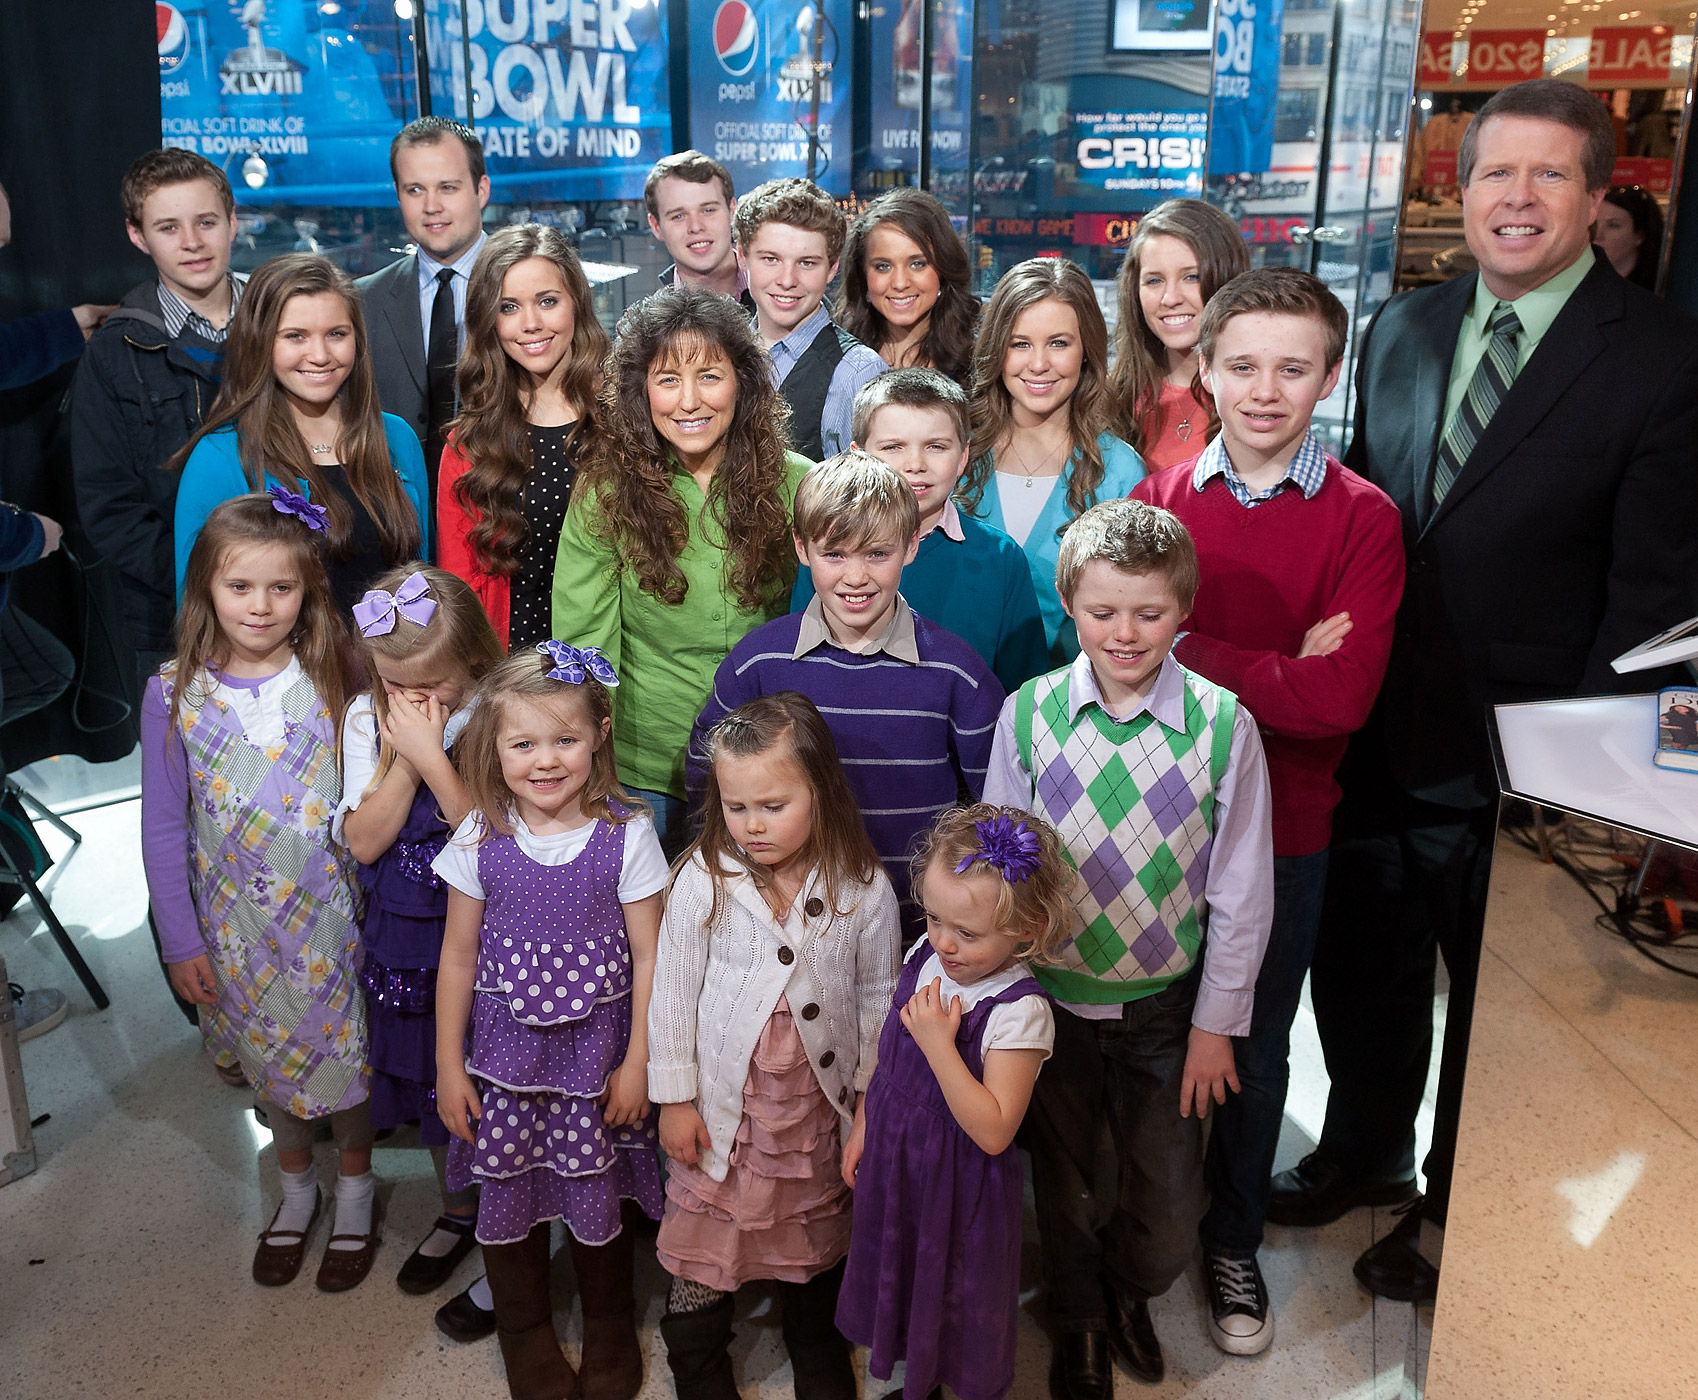 The Duggar family visits 'Extra' at their New York studio in Times Square in New York City on March 11, 2014